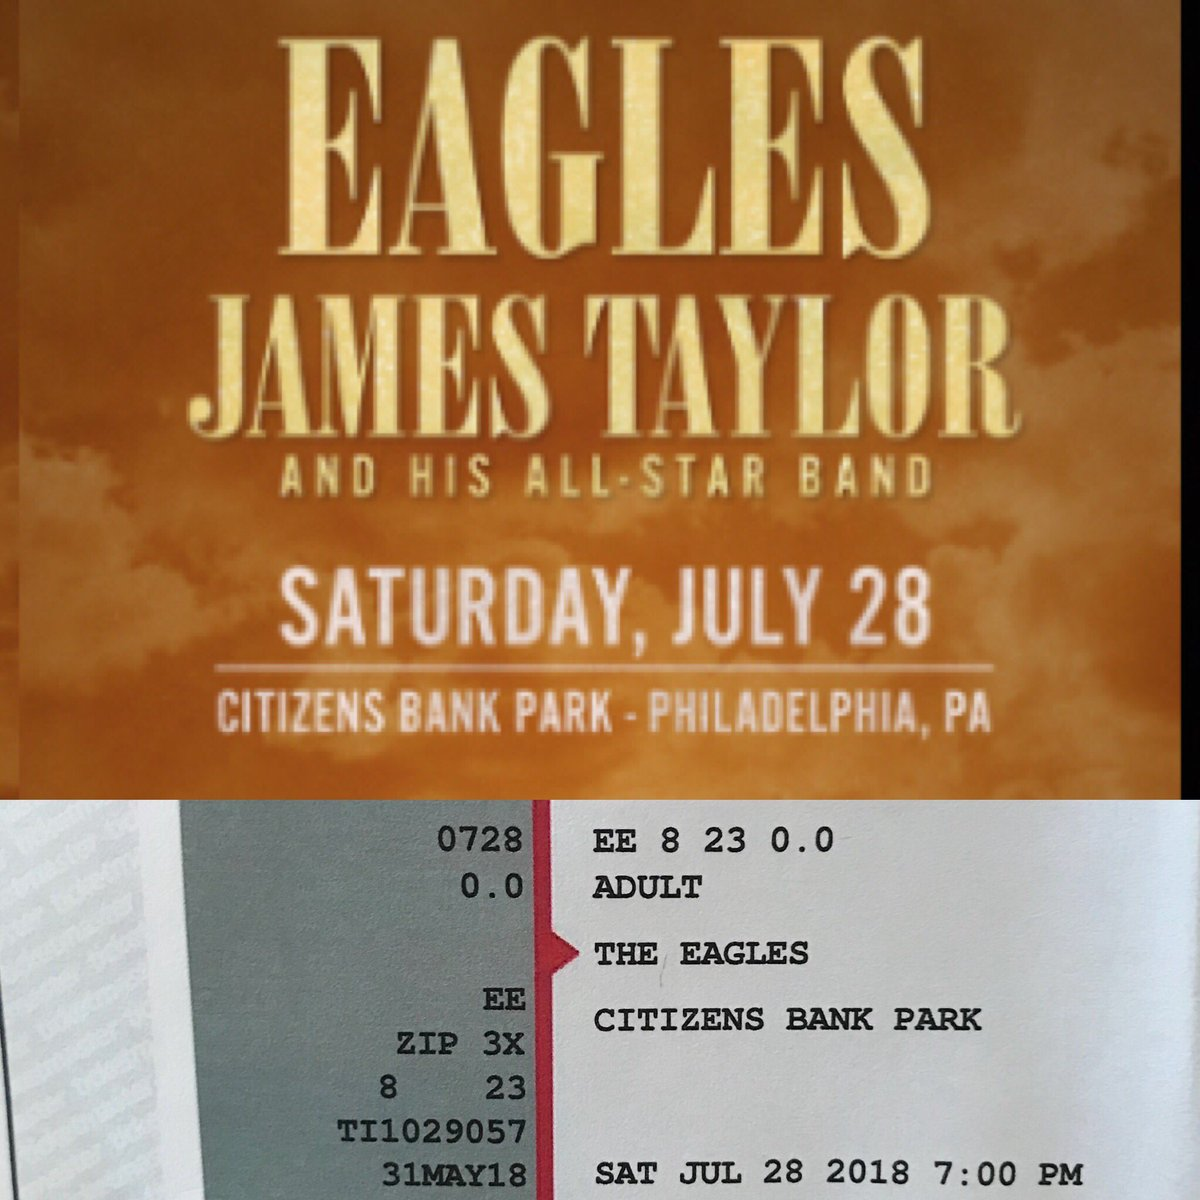 Best birthday gift ever! Going to see the Eagles @VGcom and @JamesTaylor_com in #Philly July 28!!! #dreamcometrue #bucketlist #blessed #excited #musicicons https://t.co/A8JerJZ3hW